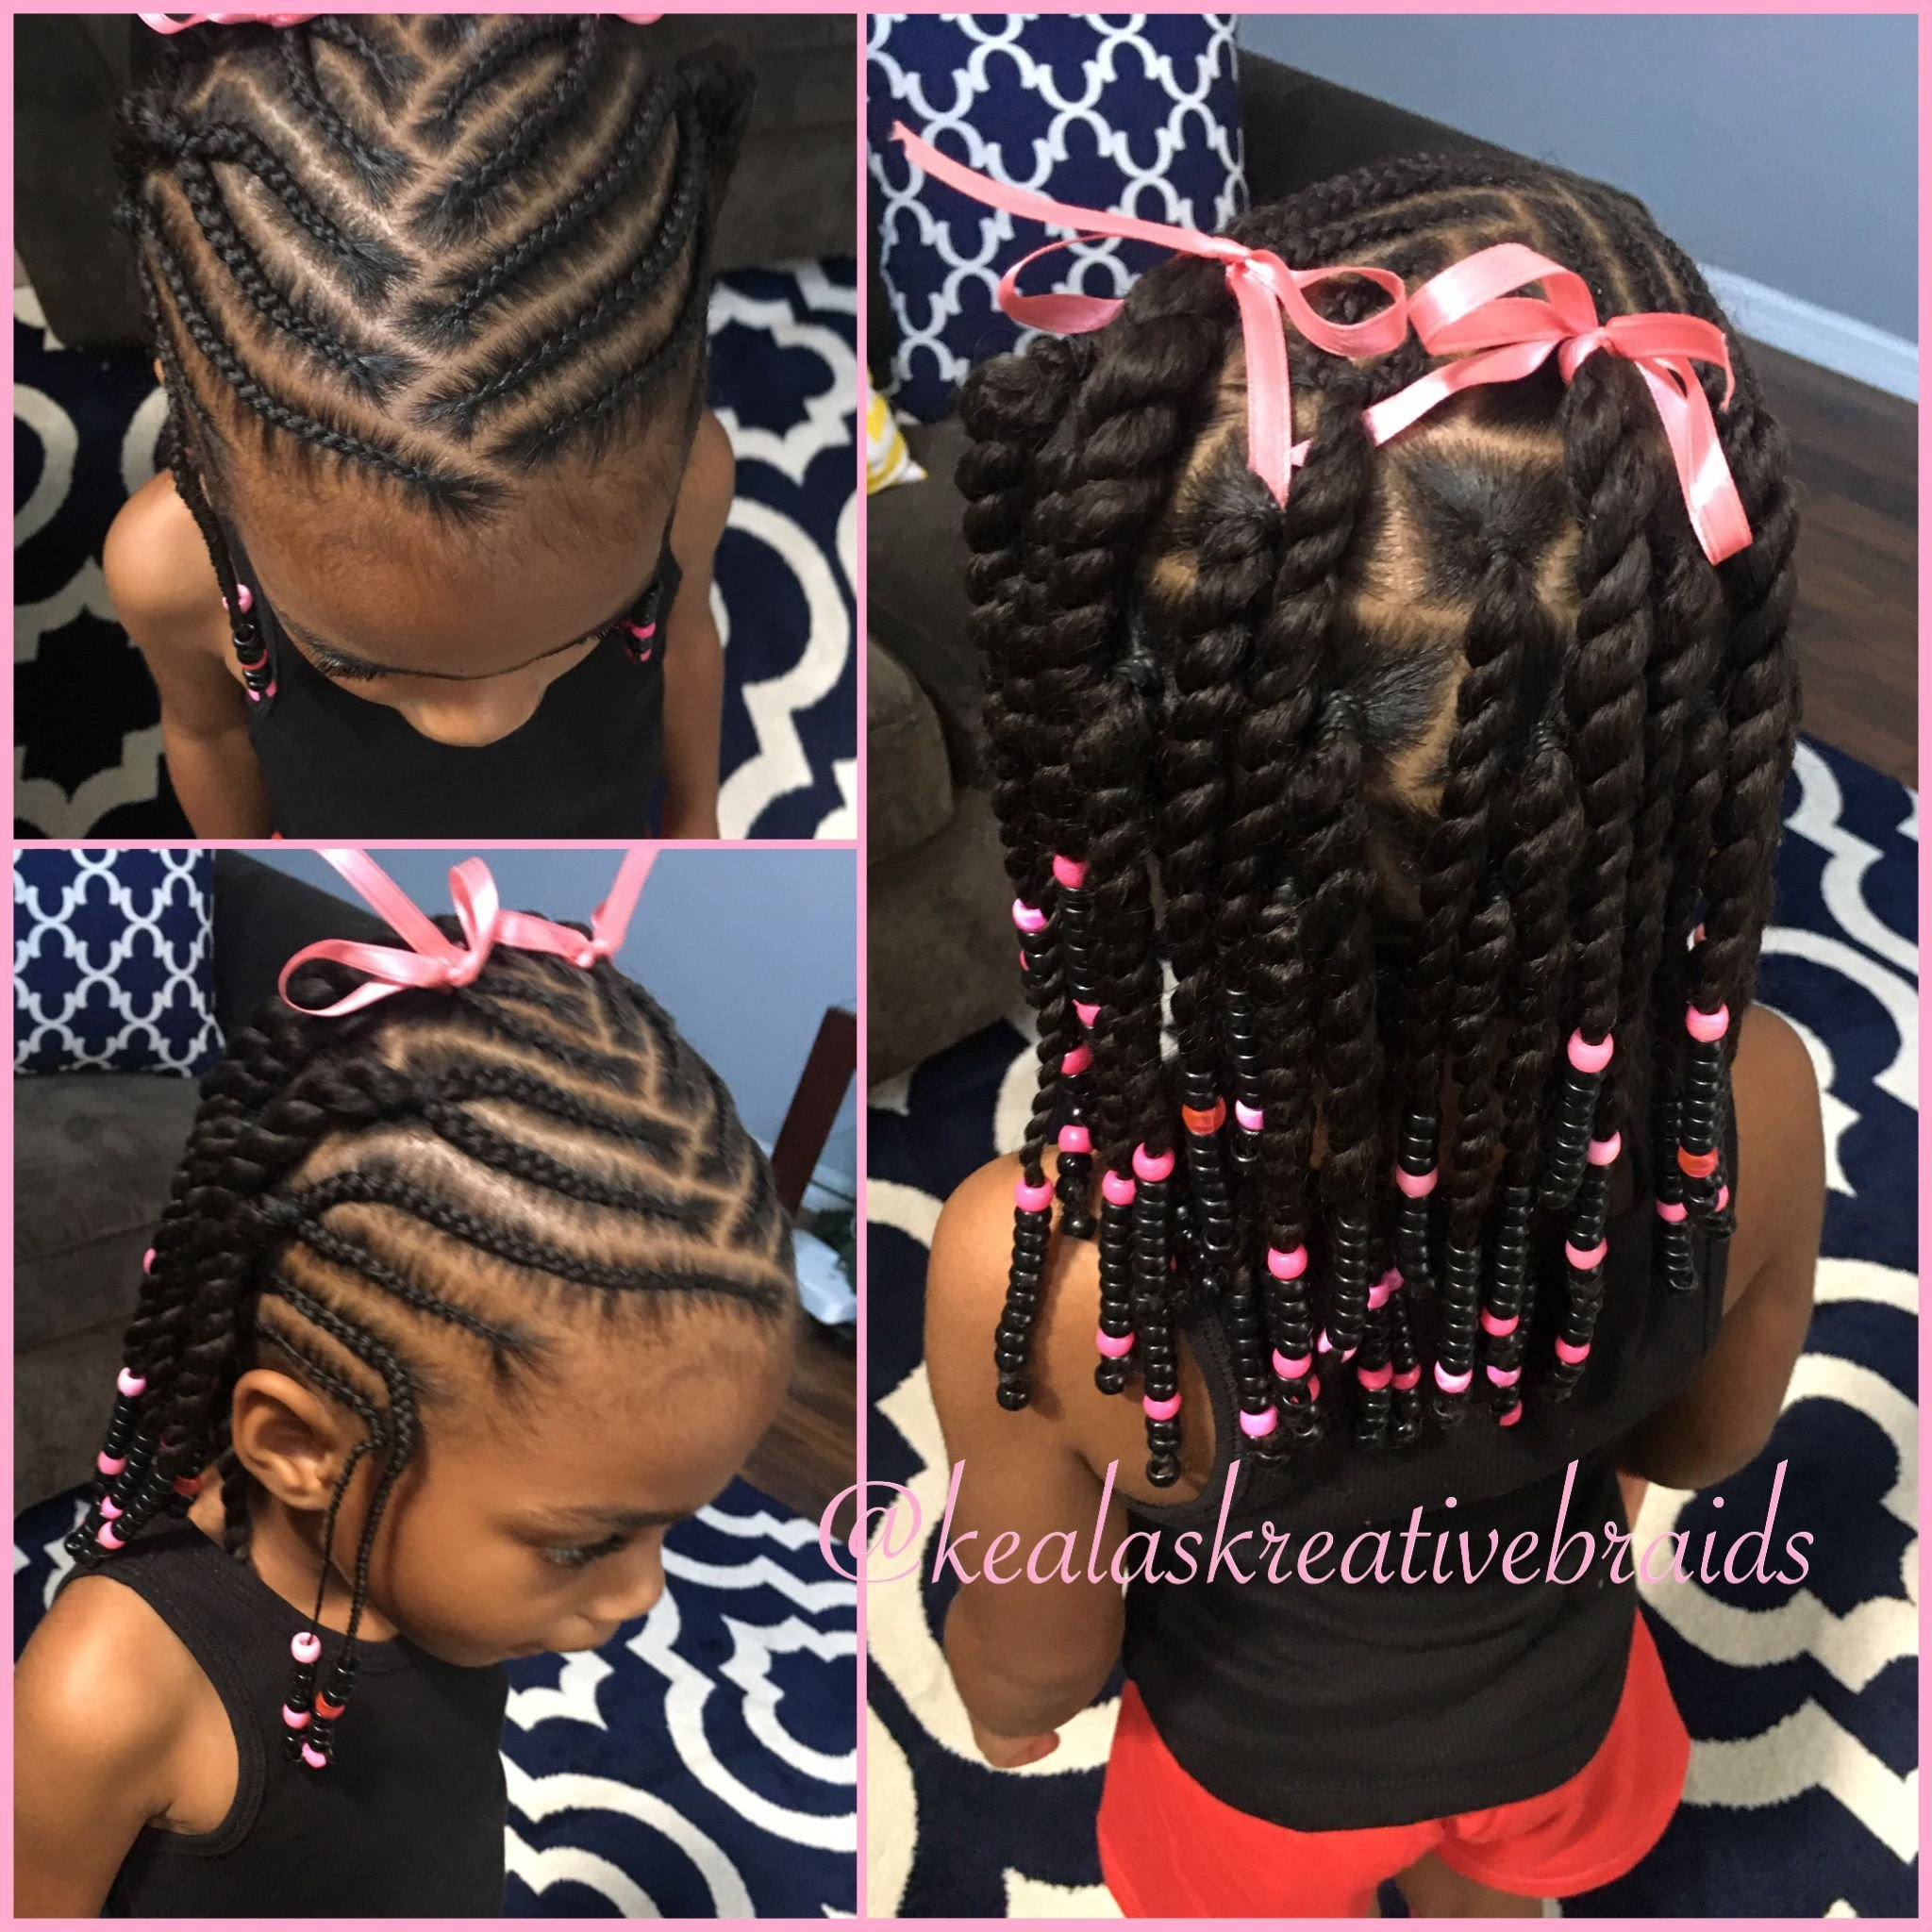 The Best Little Girl Hairstyle Beads And Braids Hairstyles For Pictures